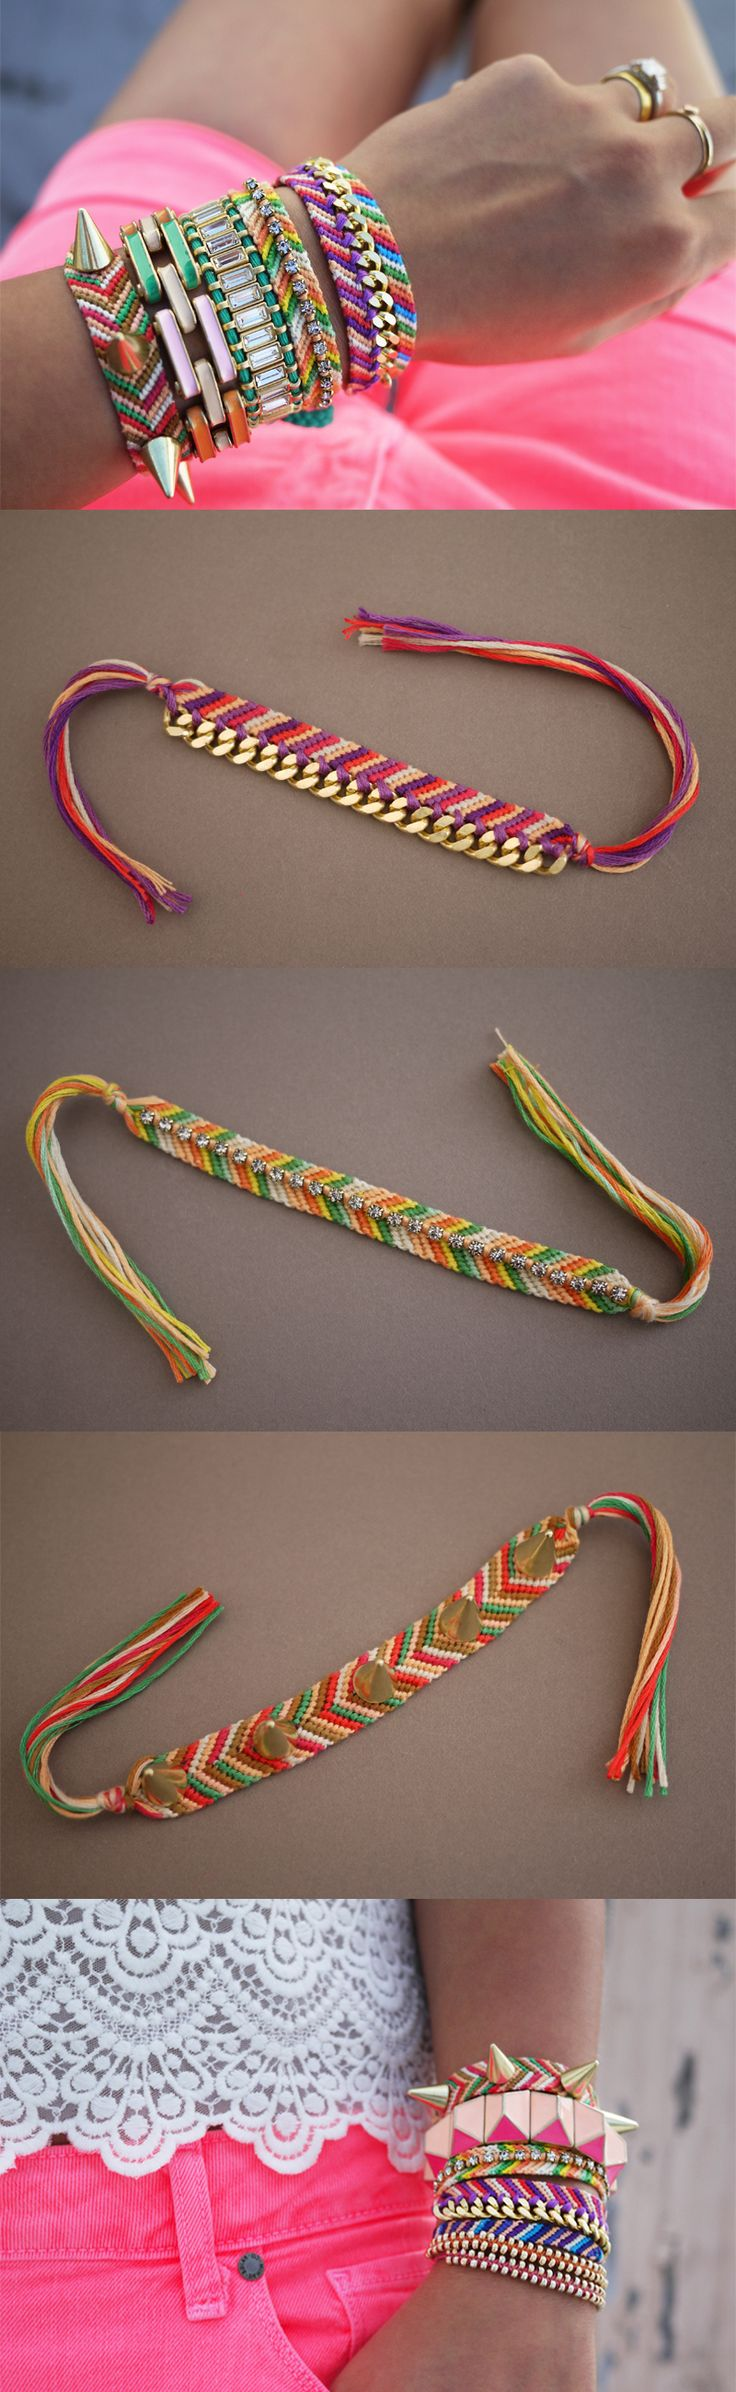 Frienship is a very important thing for me. I love making these bracelets because 1) It's a fun ways of making art and 2) it is a good way of showing your friends your frienship by making the same pattern to all of them. It's a nice little gift to give for ANY occasion. Infinite ways of making them, choosing the colors, adding little or big beads, you can never get tired of finding ideas for it!!